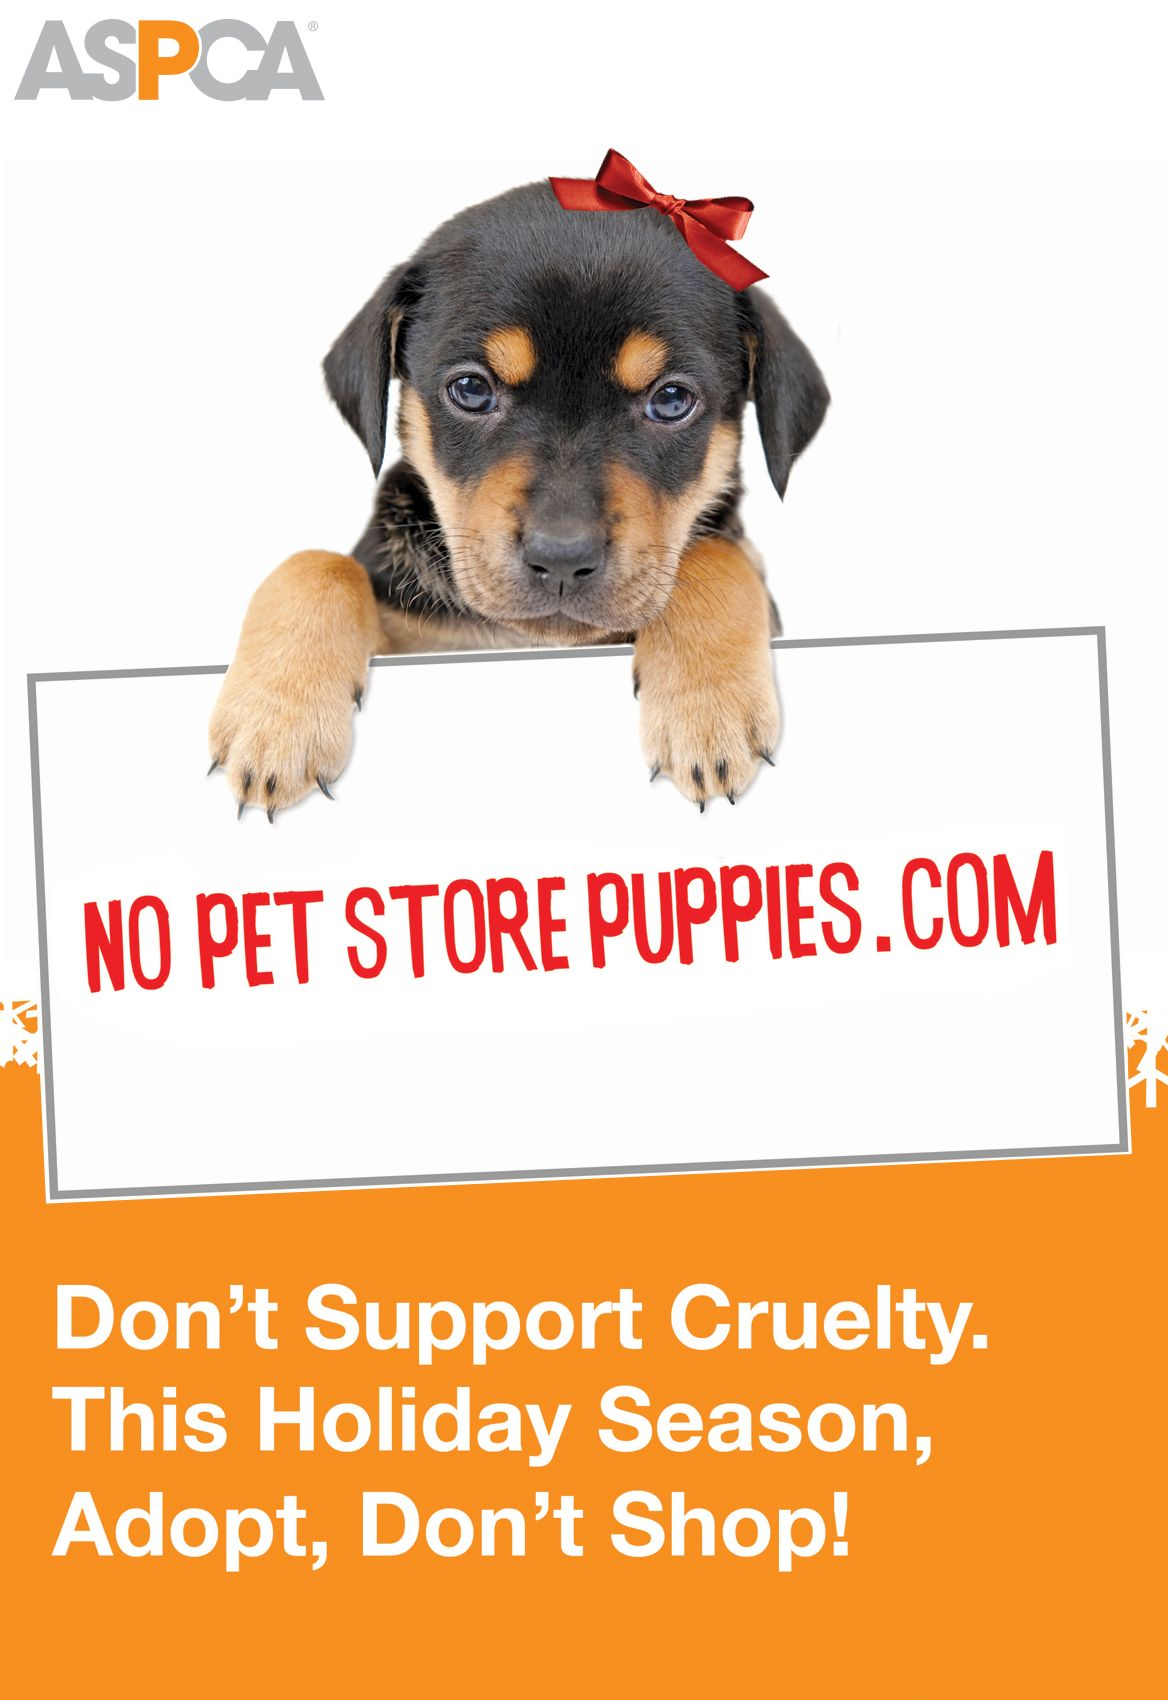 Family Pets The Ultimate Immune System Boosters For Children Puppy Mills Pet Store Puppies Puppies